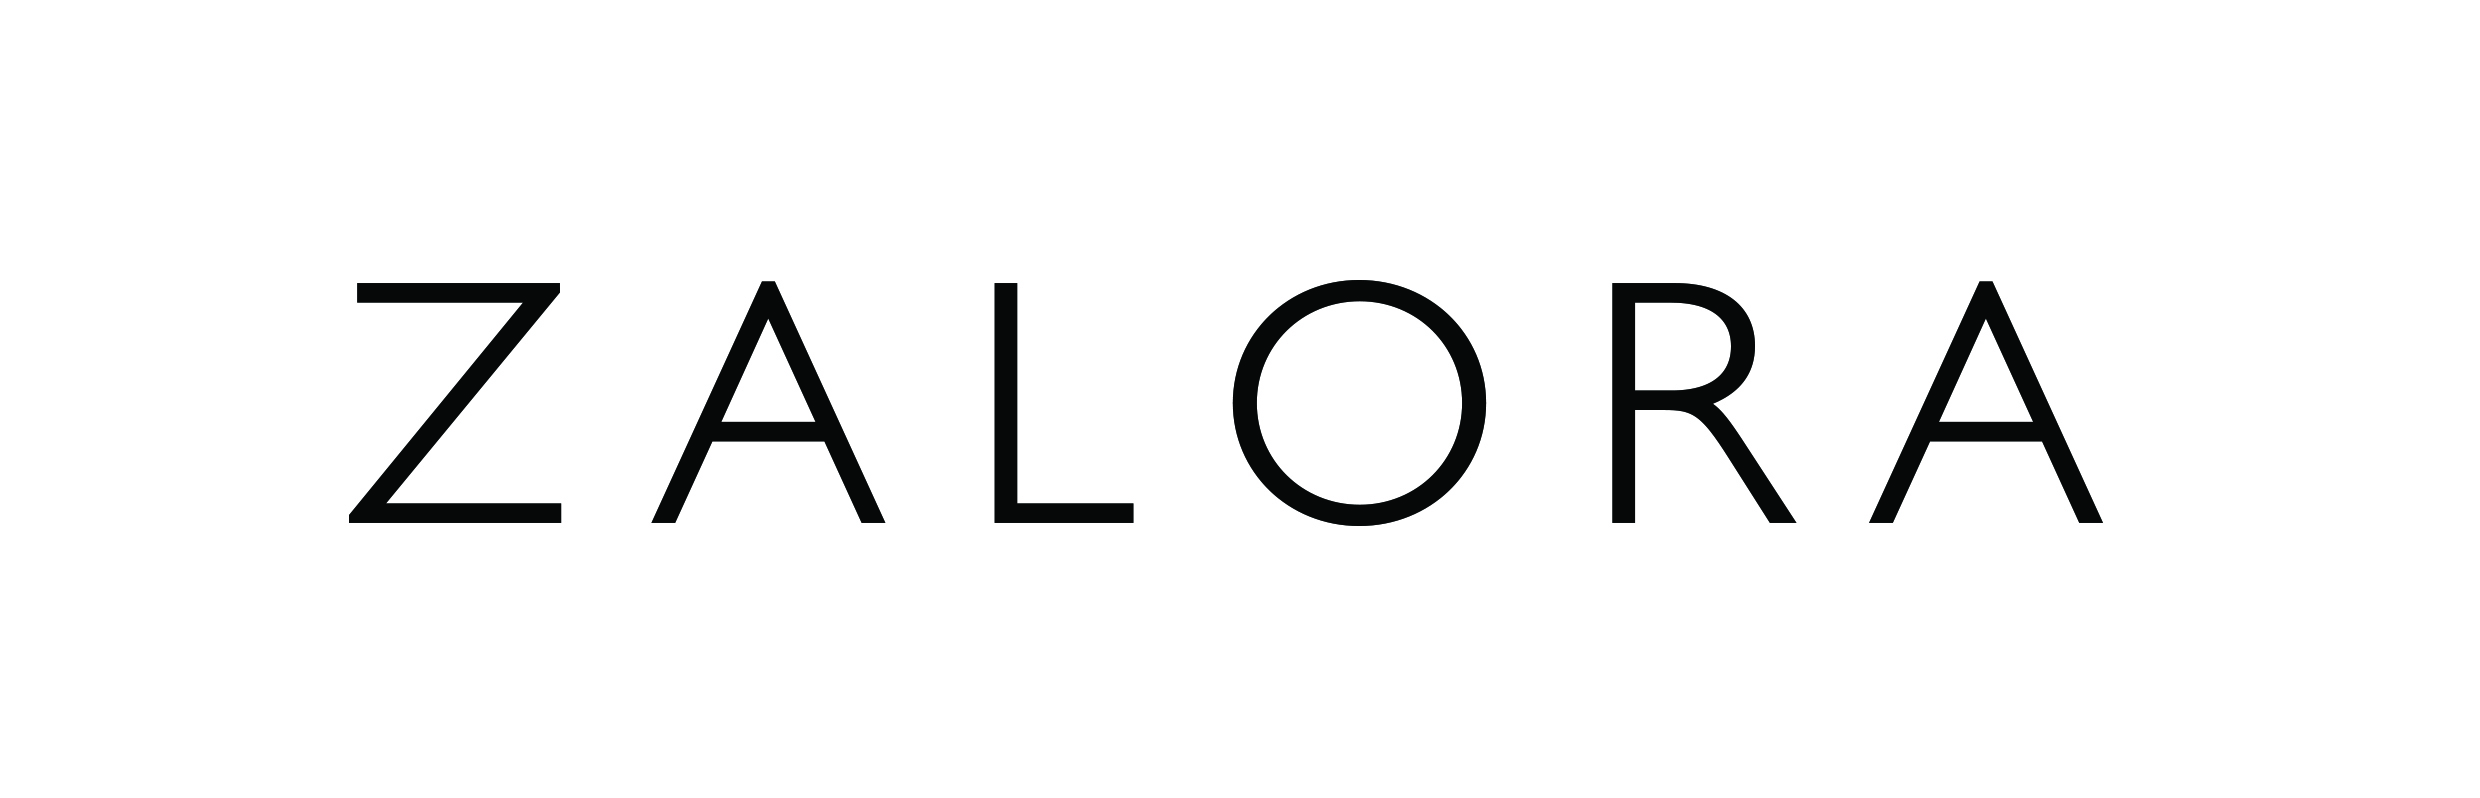 ZALORA SEA - Job Board